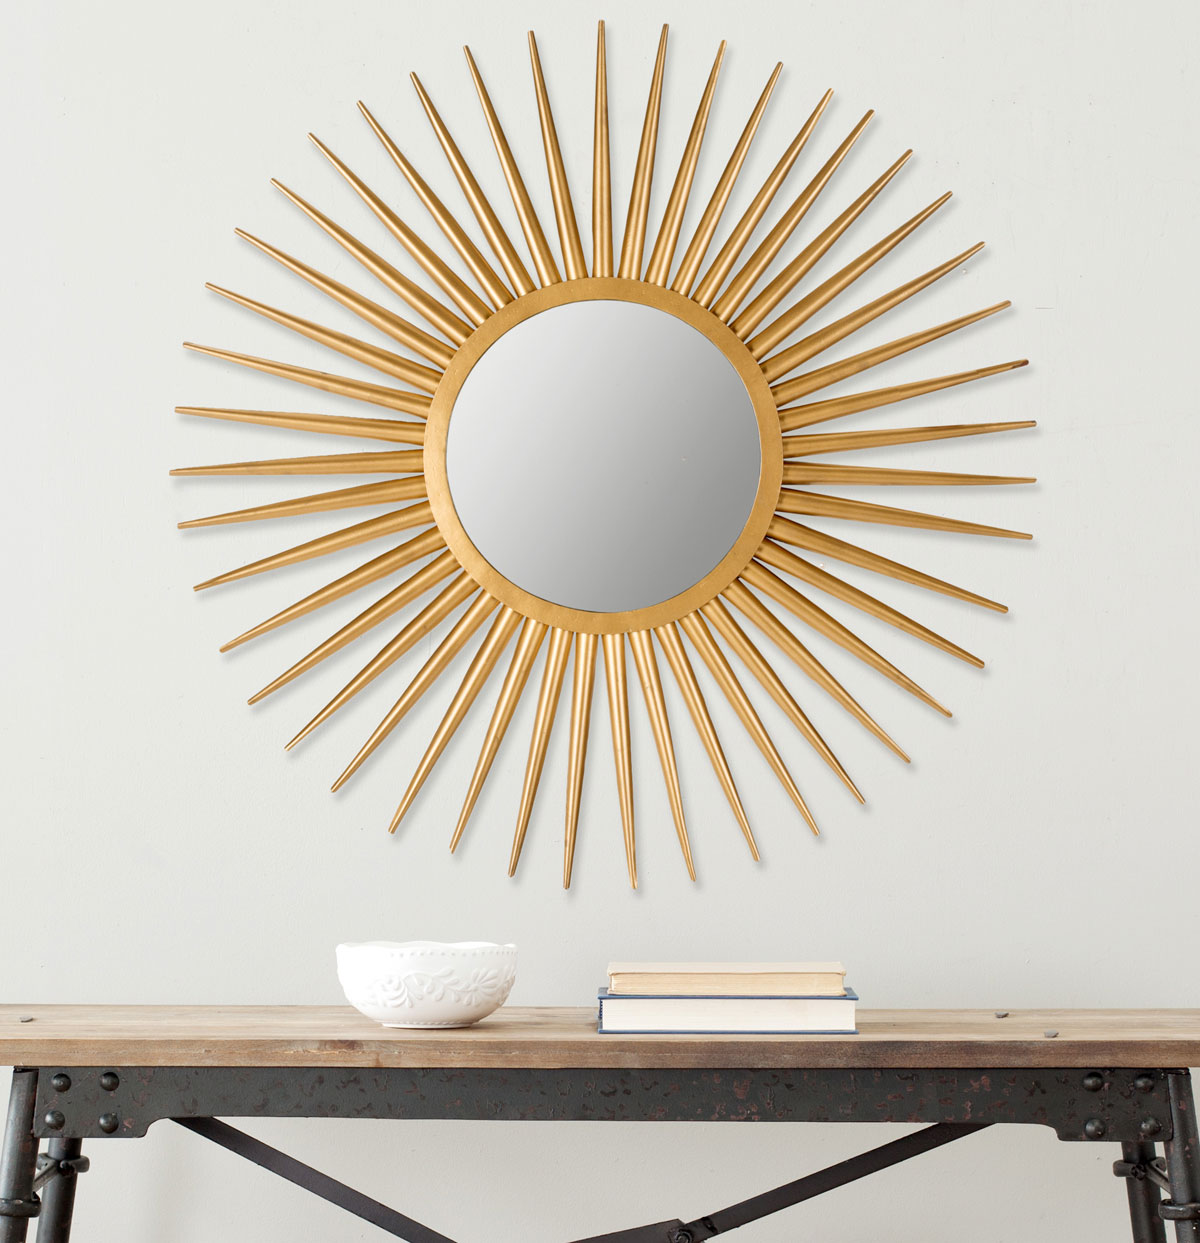 Sunburst Silver Mirror | Home Depot Sunburst Mirror | Martha Stewart Sunburst Mirror